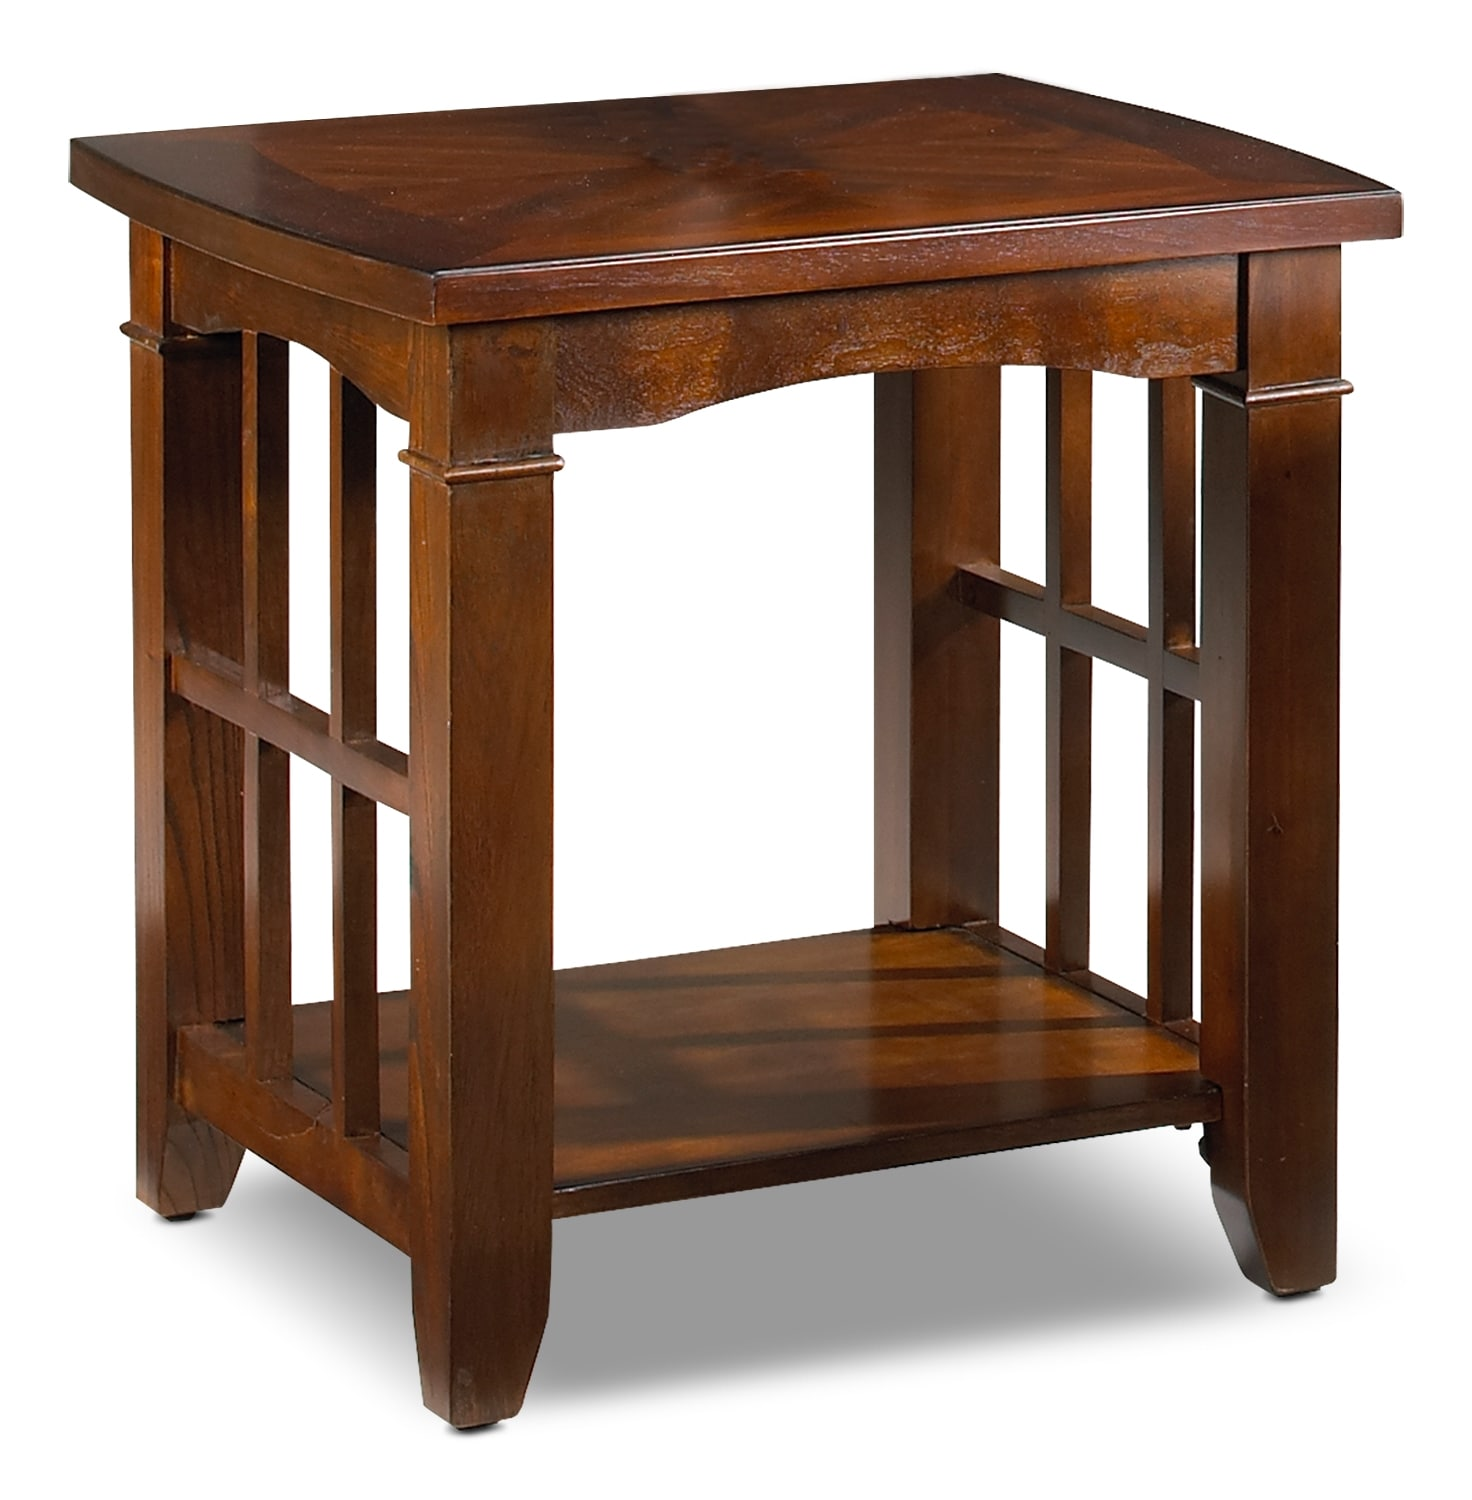 Accent and Occasional Furniture - Asher Bridge End Table - Walnut